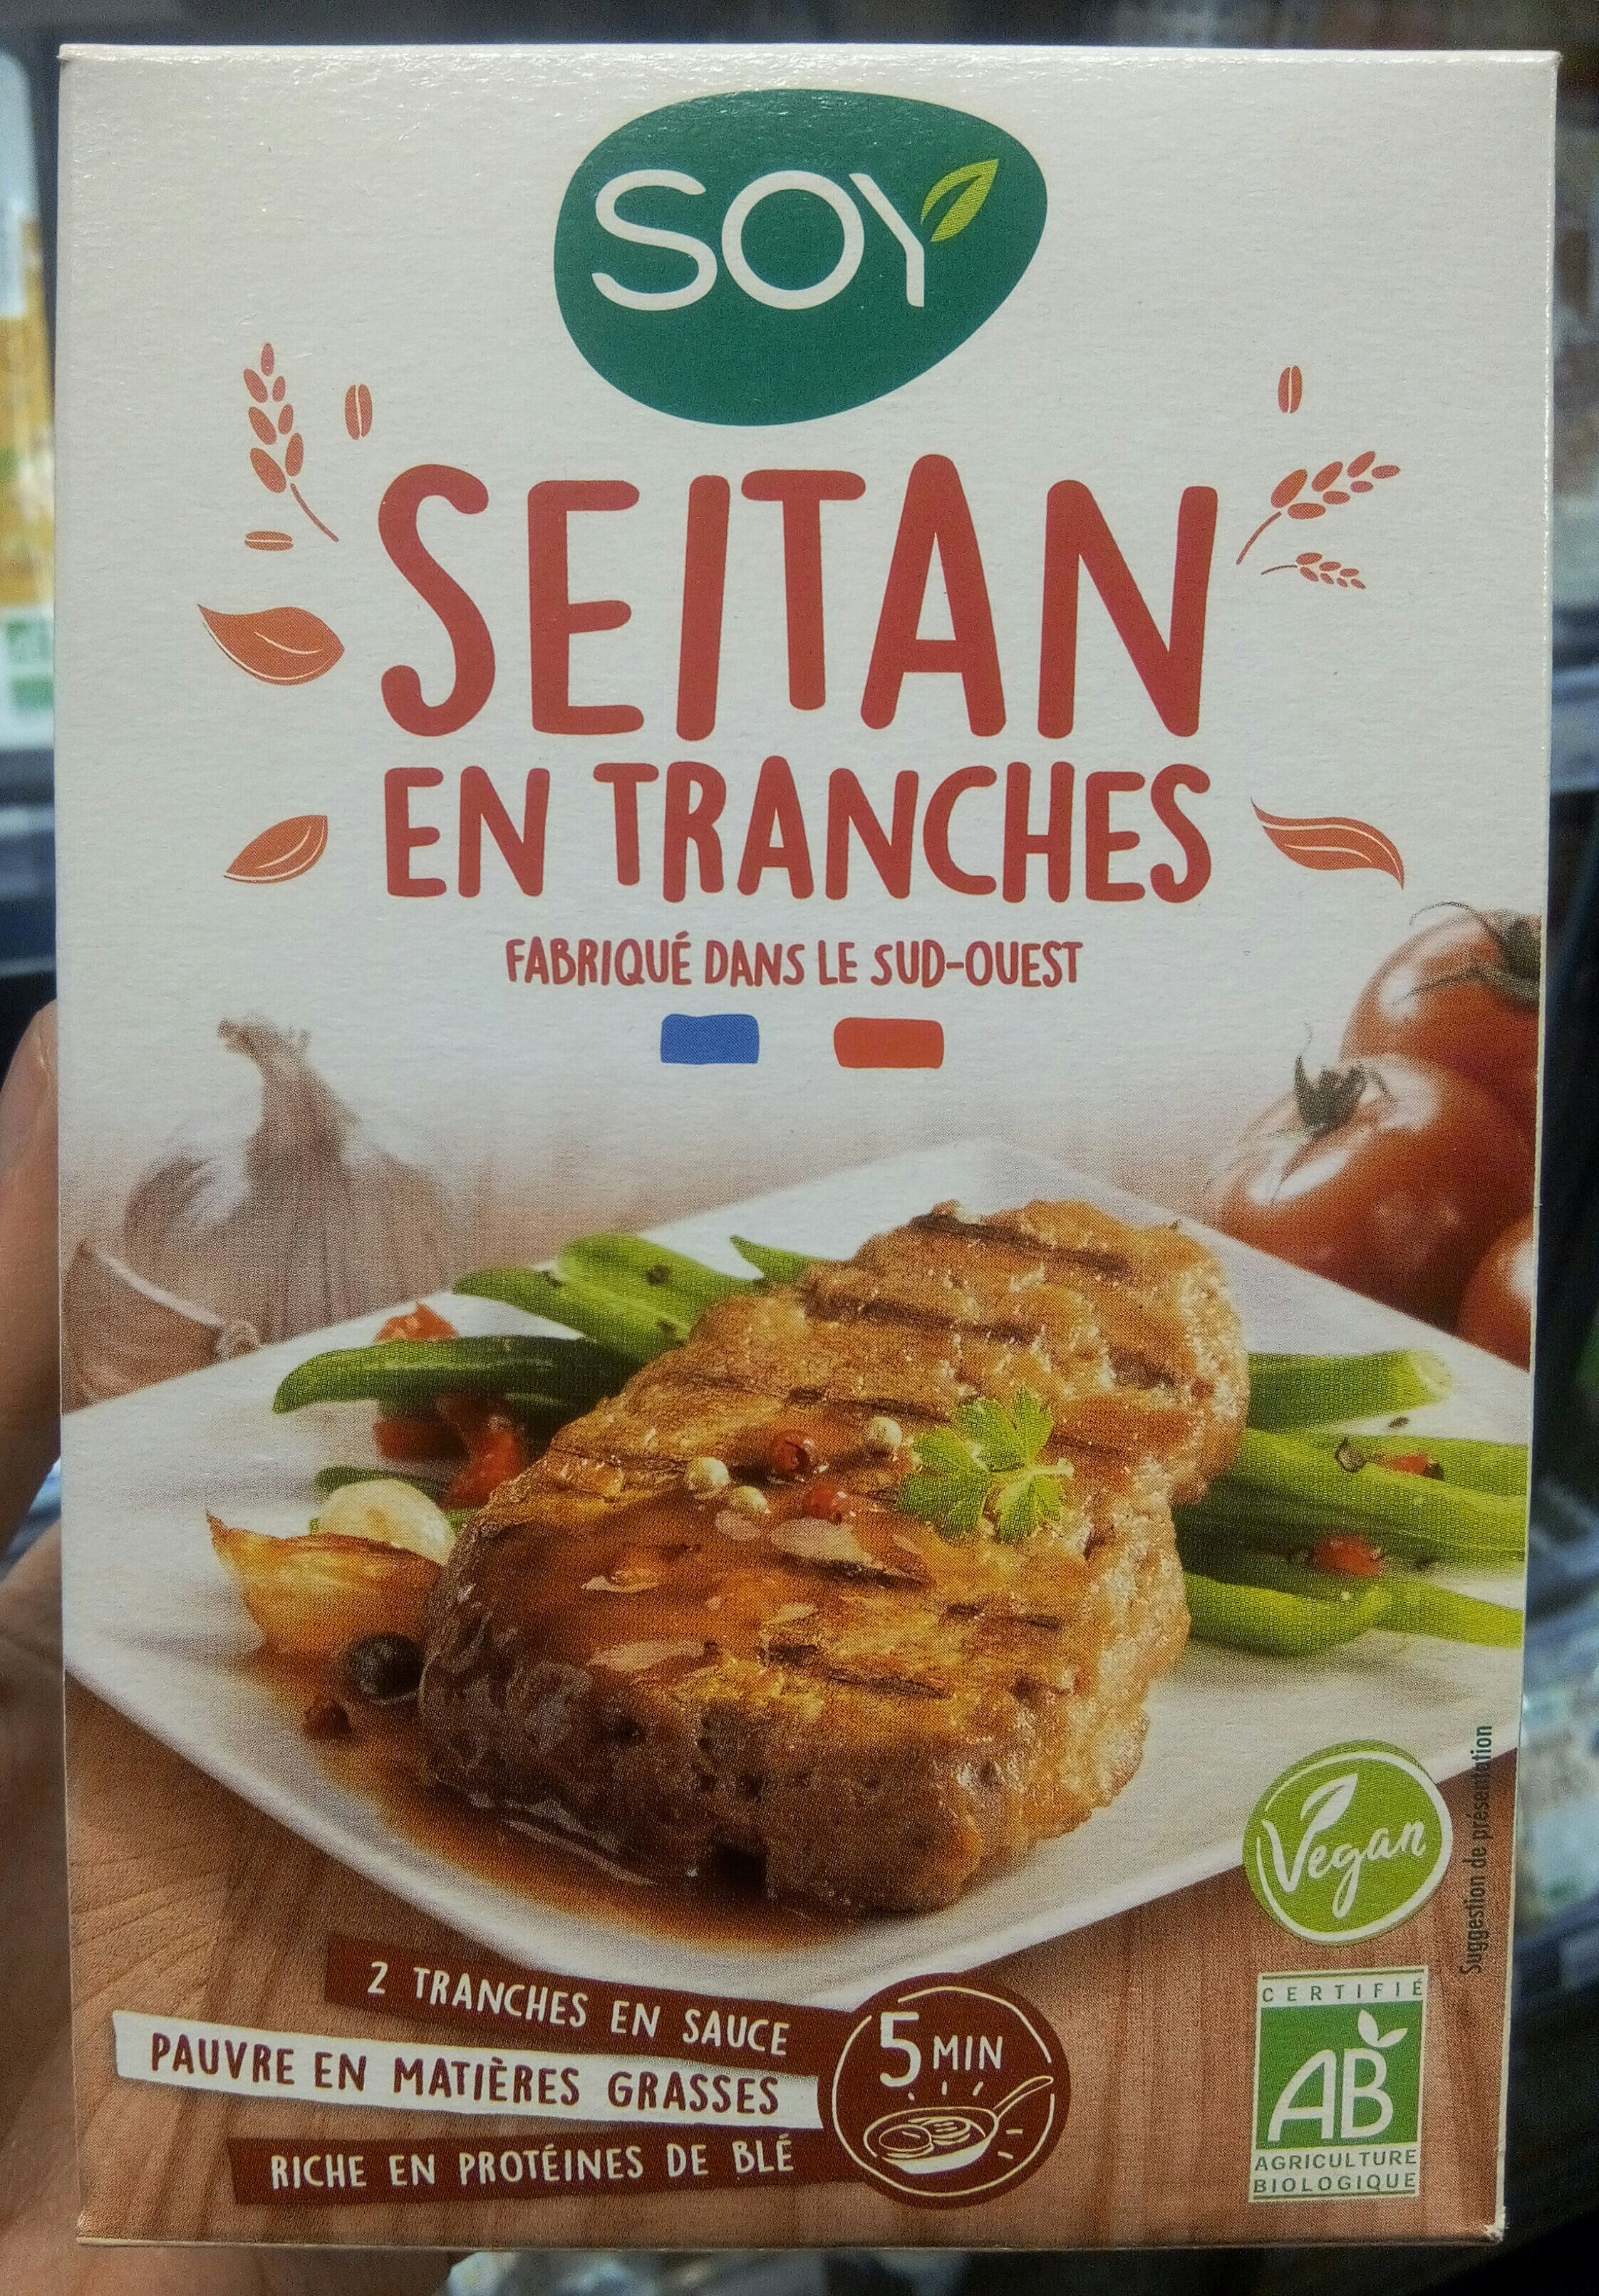 Seitan en tranches - Product